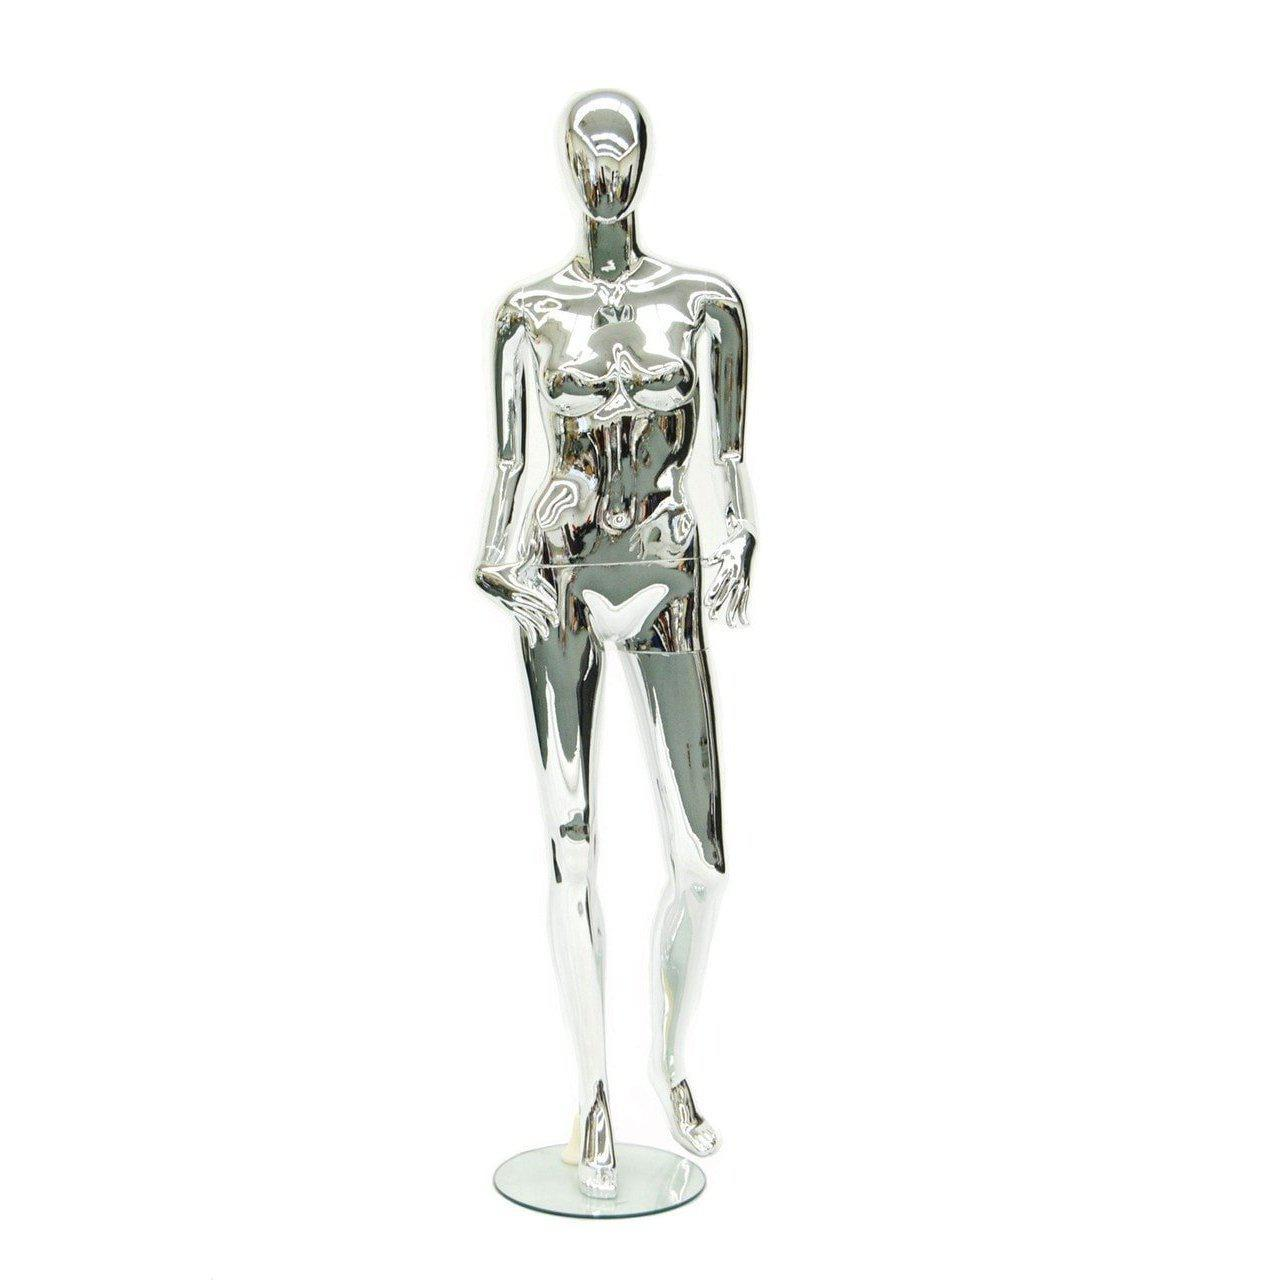 Mannequin Mall Female Chrome Mannequin MM-801T22 For Fashion Stores and Retail Shops